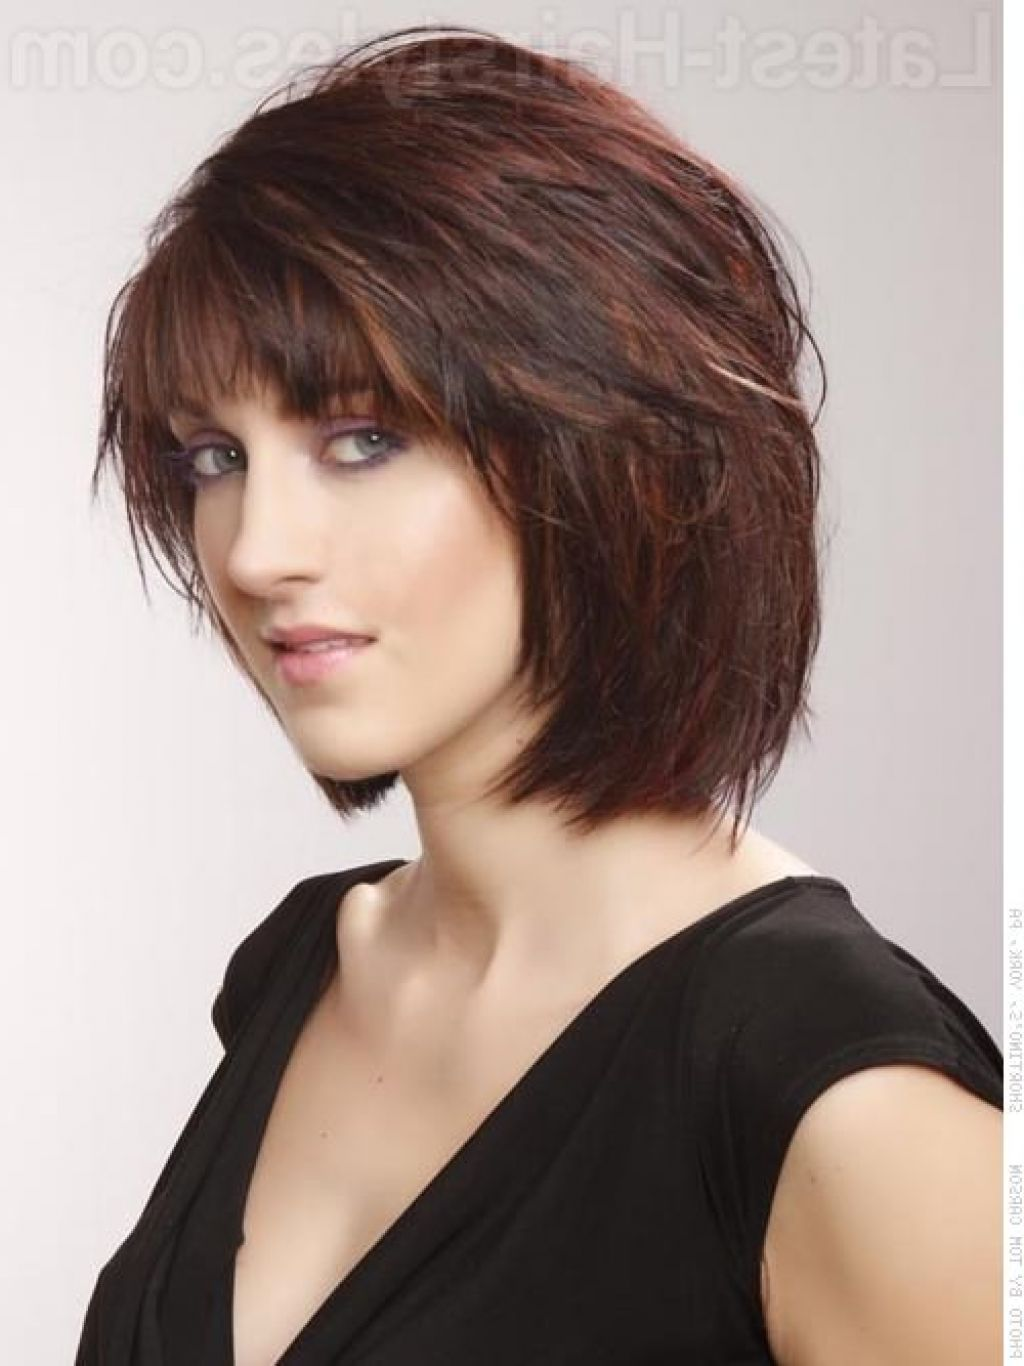 Groovy Chin Length Bob Haircuts Layered Chin Length Bob With Bangs Hairstyles For Women Draintrainus